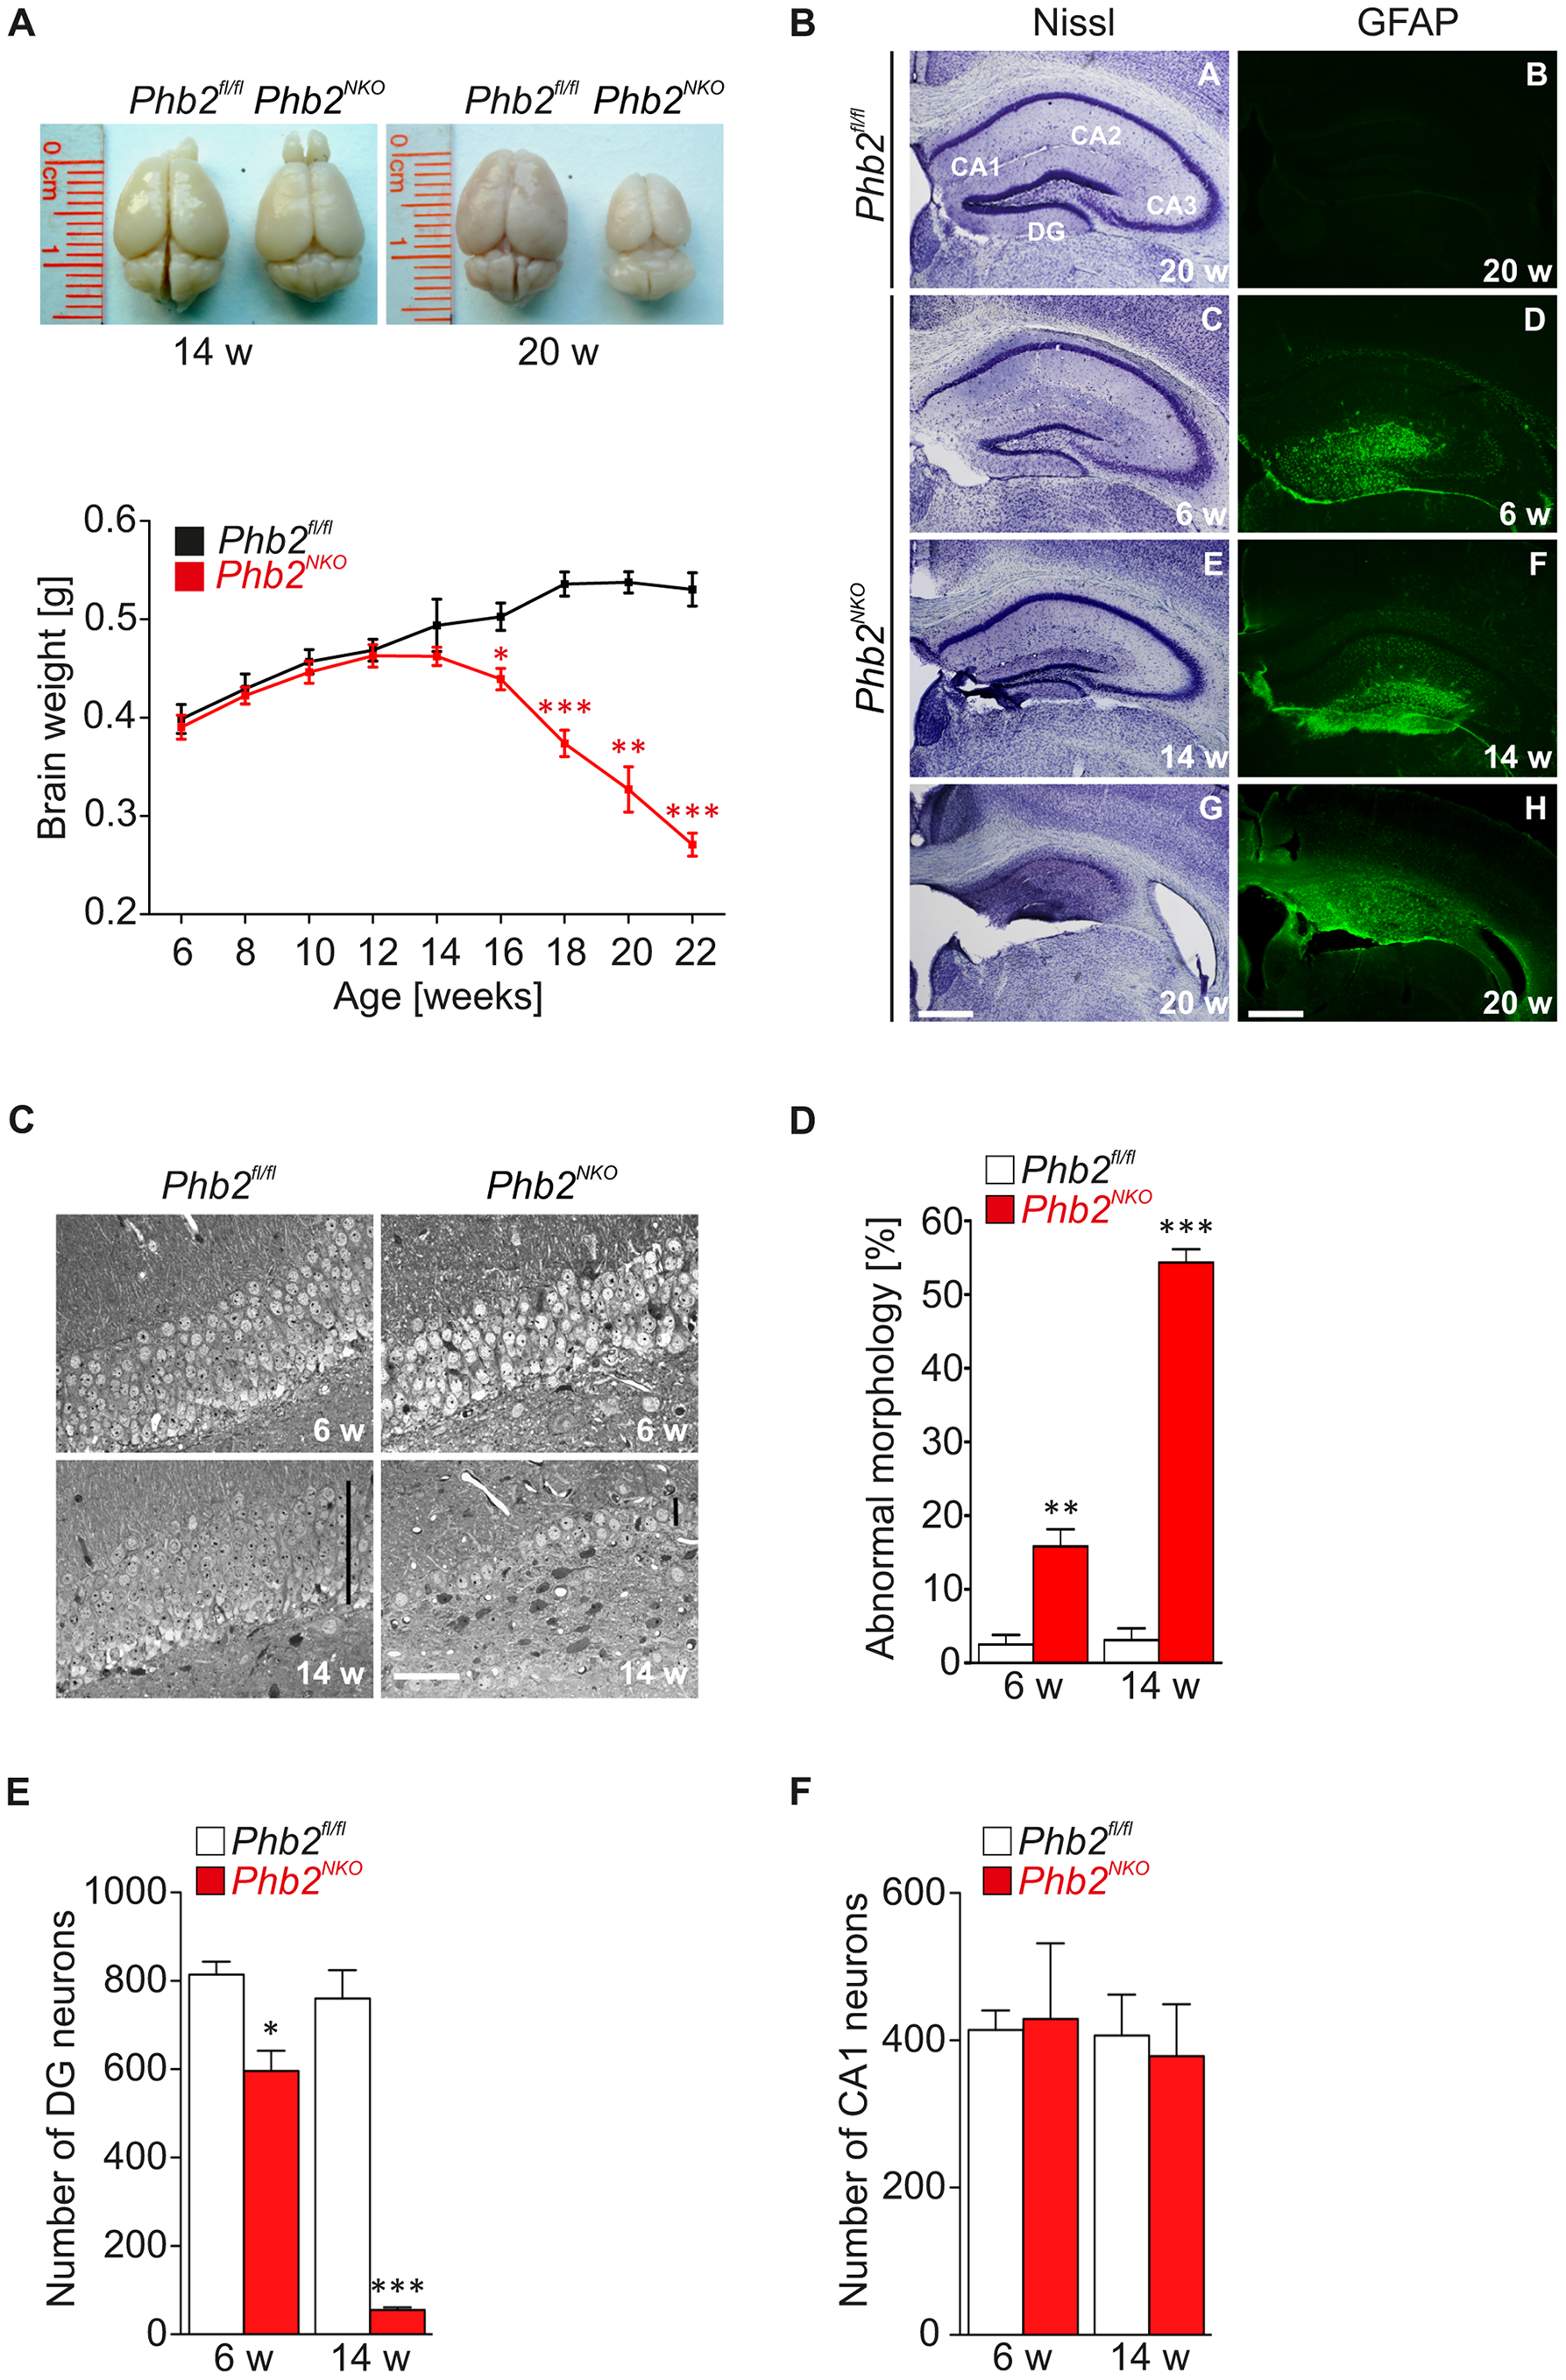 Progressive astrogliosis and loss of hippocampal neurons in <i>Phb2<sup>NKO</sup></i> mice.